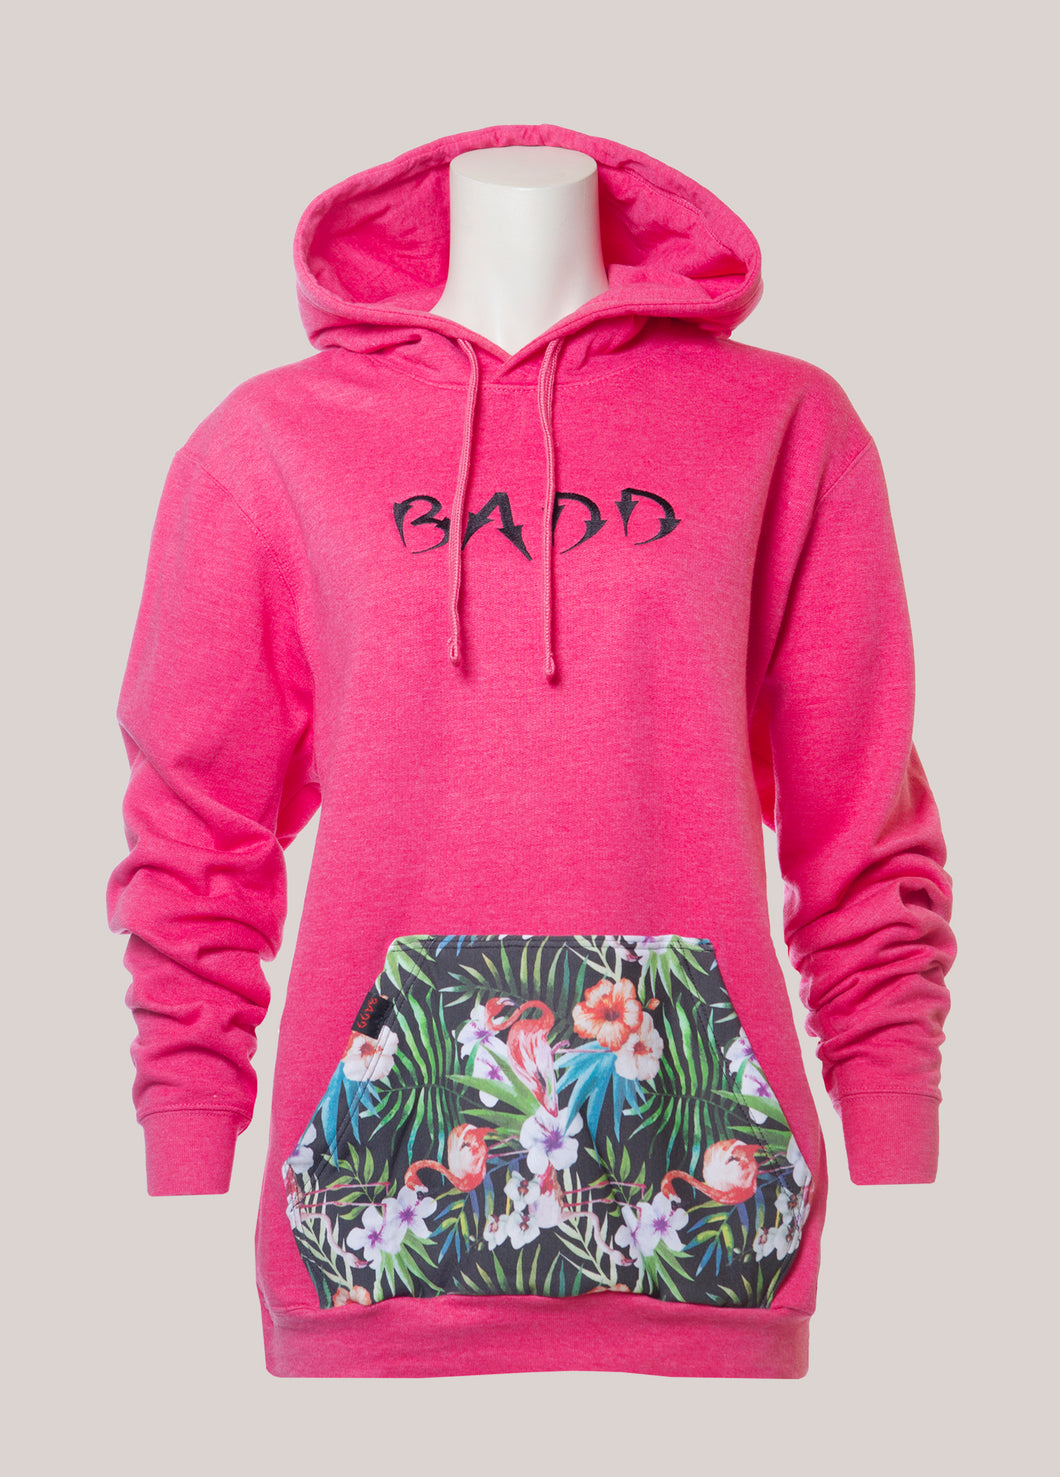 BADD Logo Women's Flower Pocket Hoodie Pink